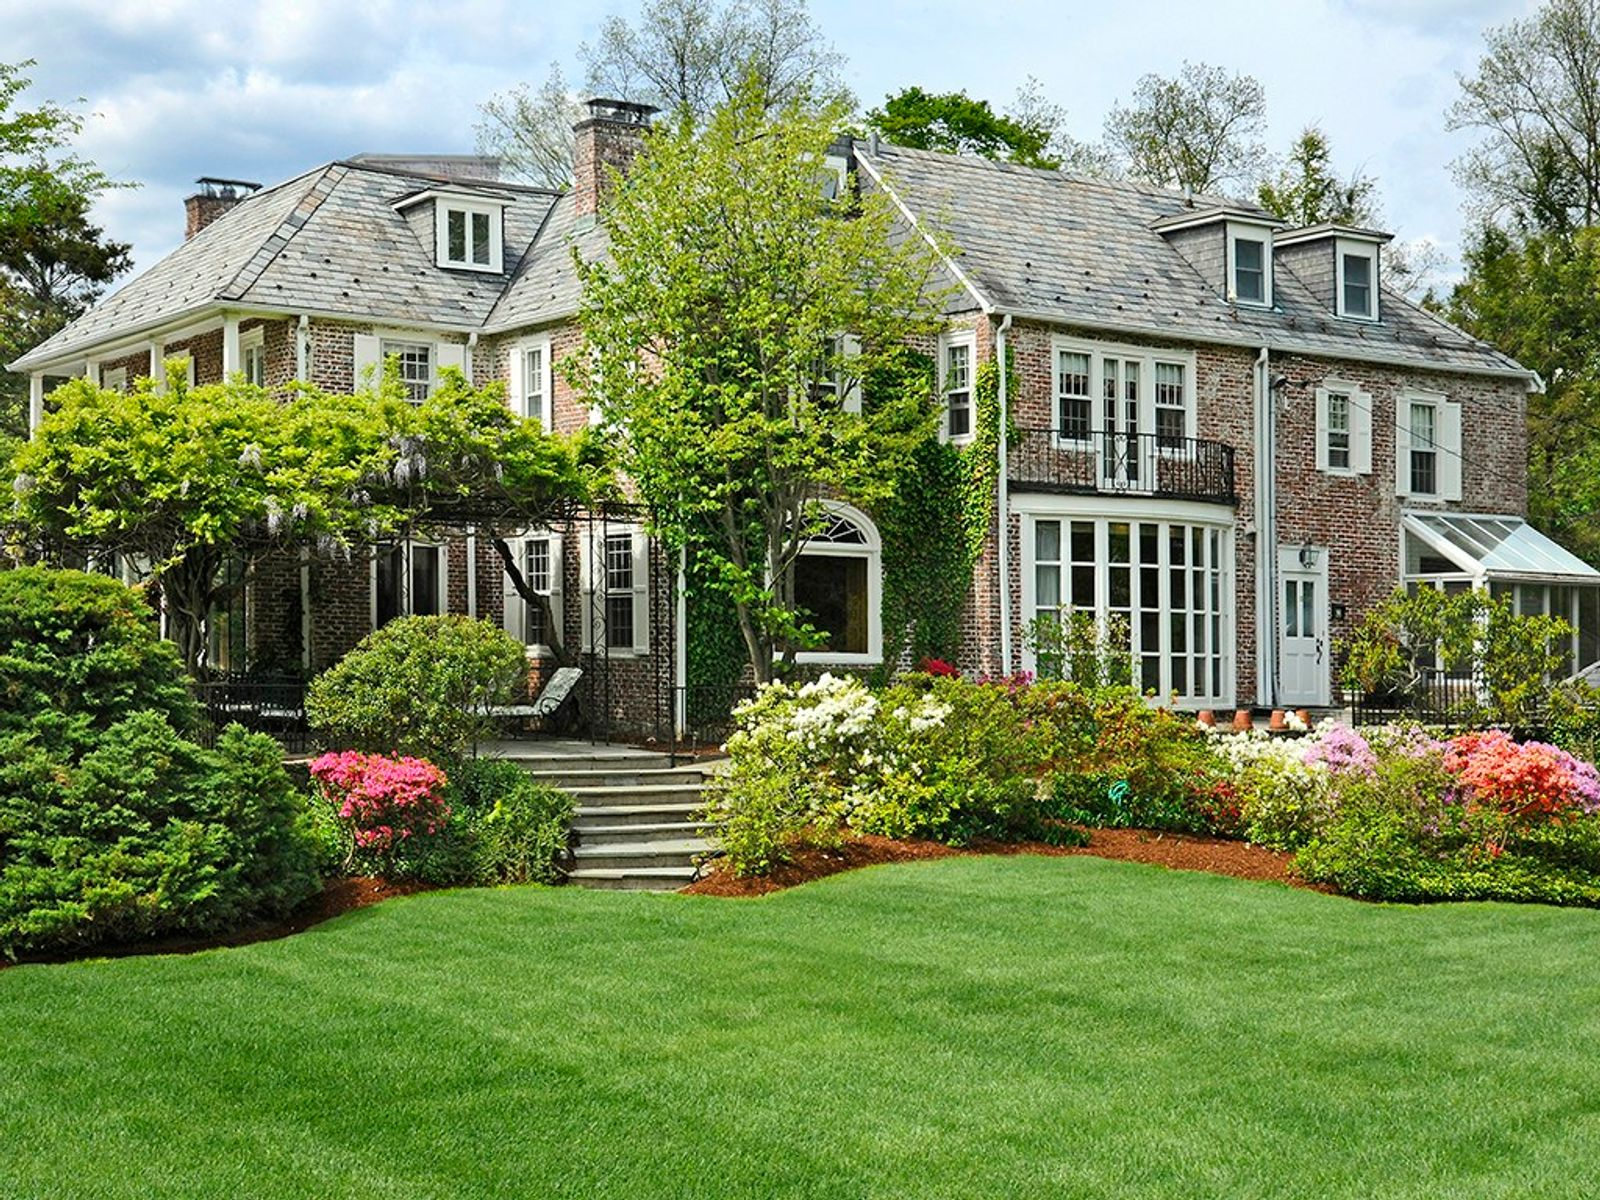 Elegant Georgian Manor, Greenwich CT Single Family Home - Greenwich Real Estate